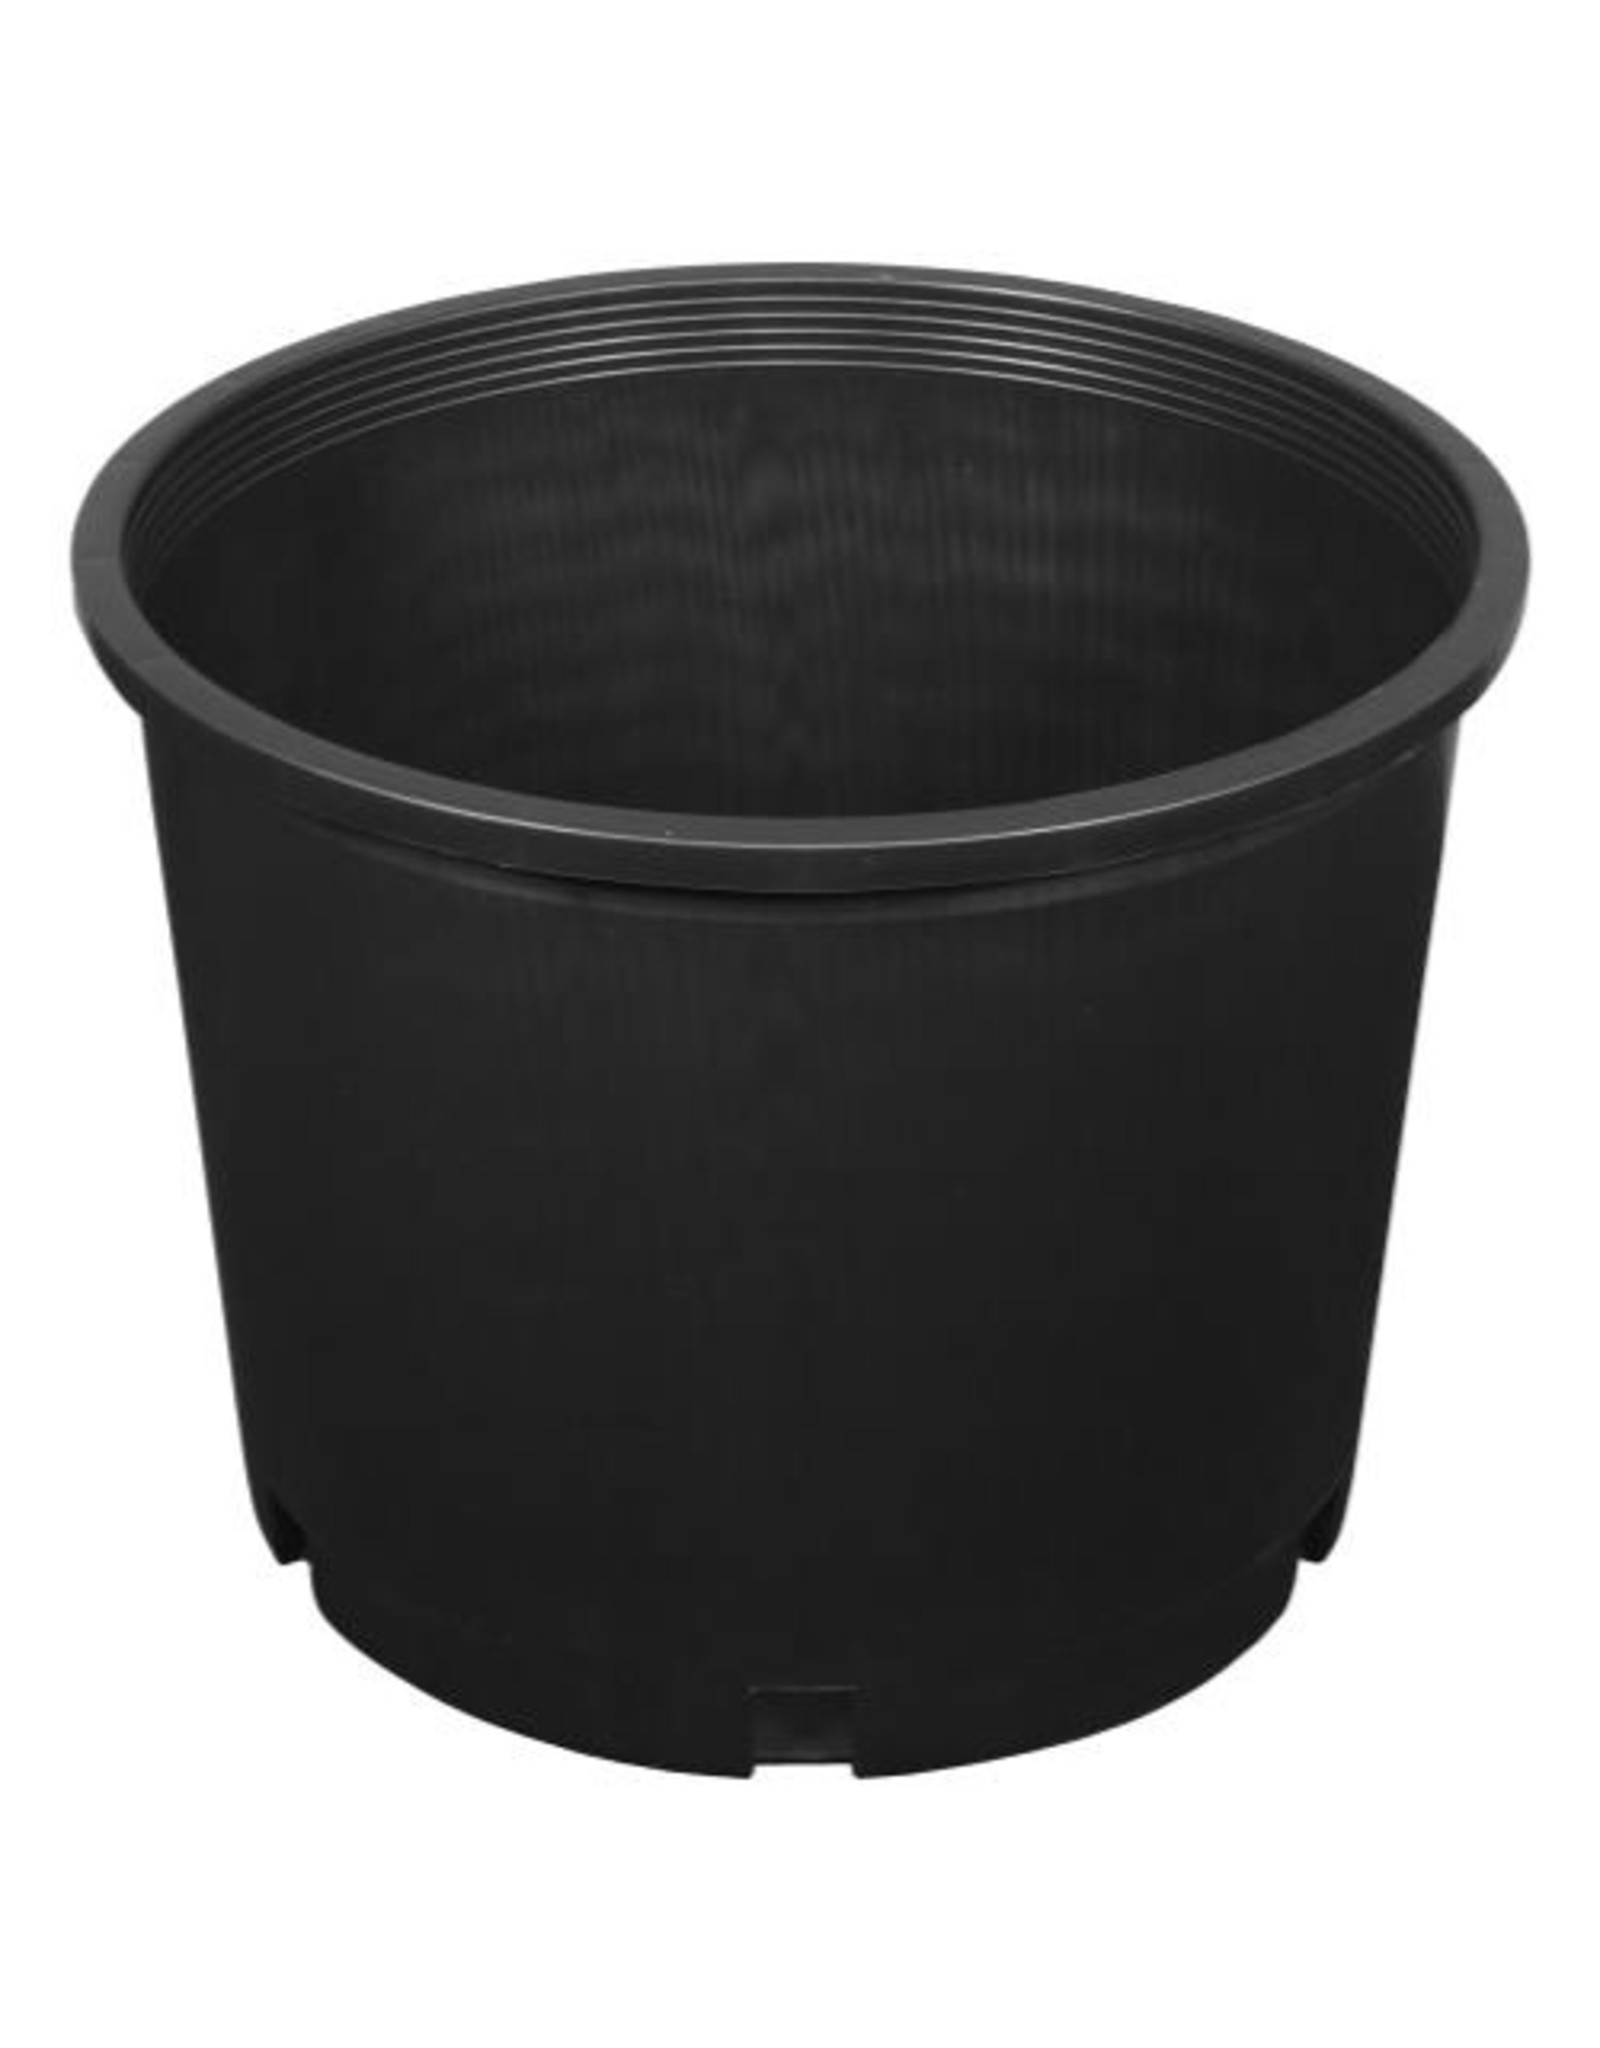 Nursery Pot Premium - 7 Gal